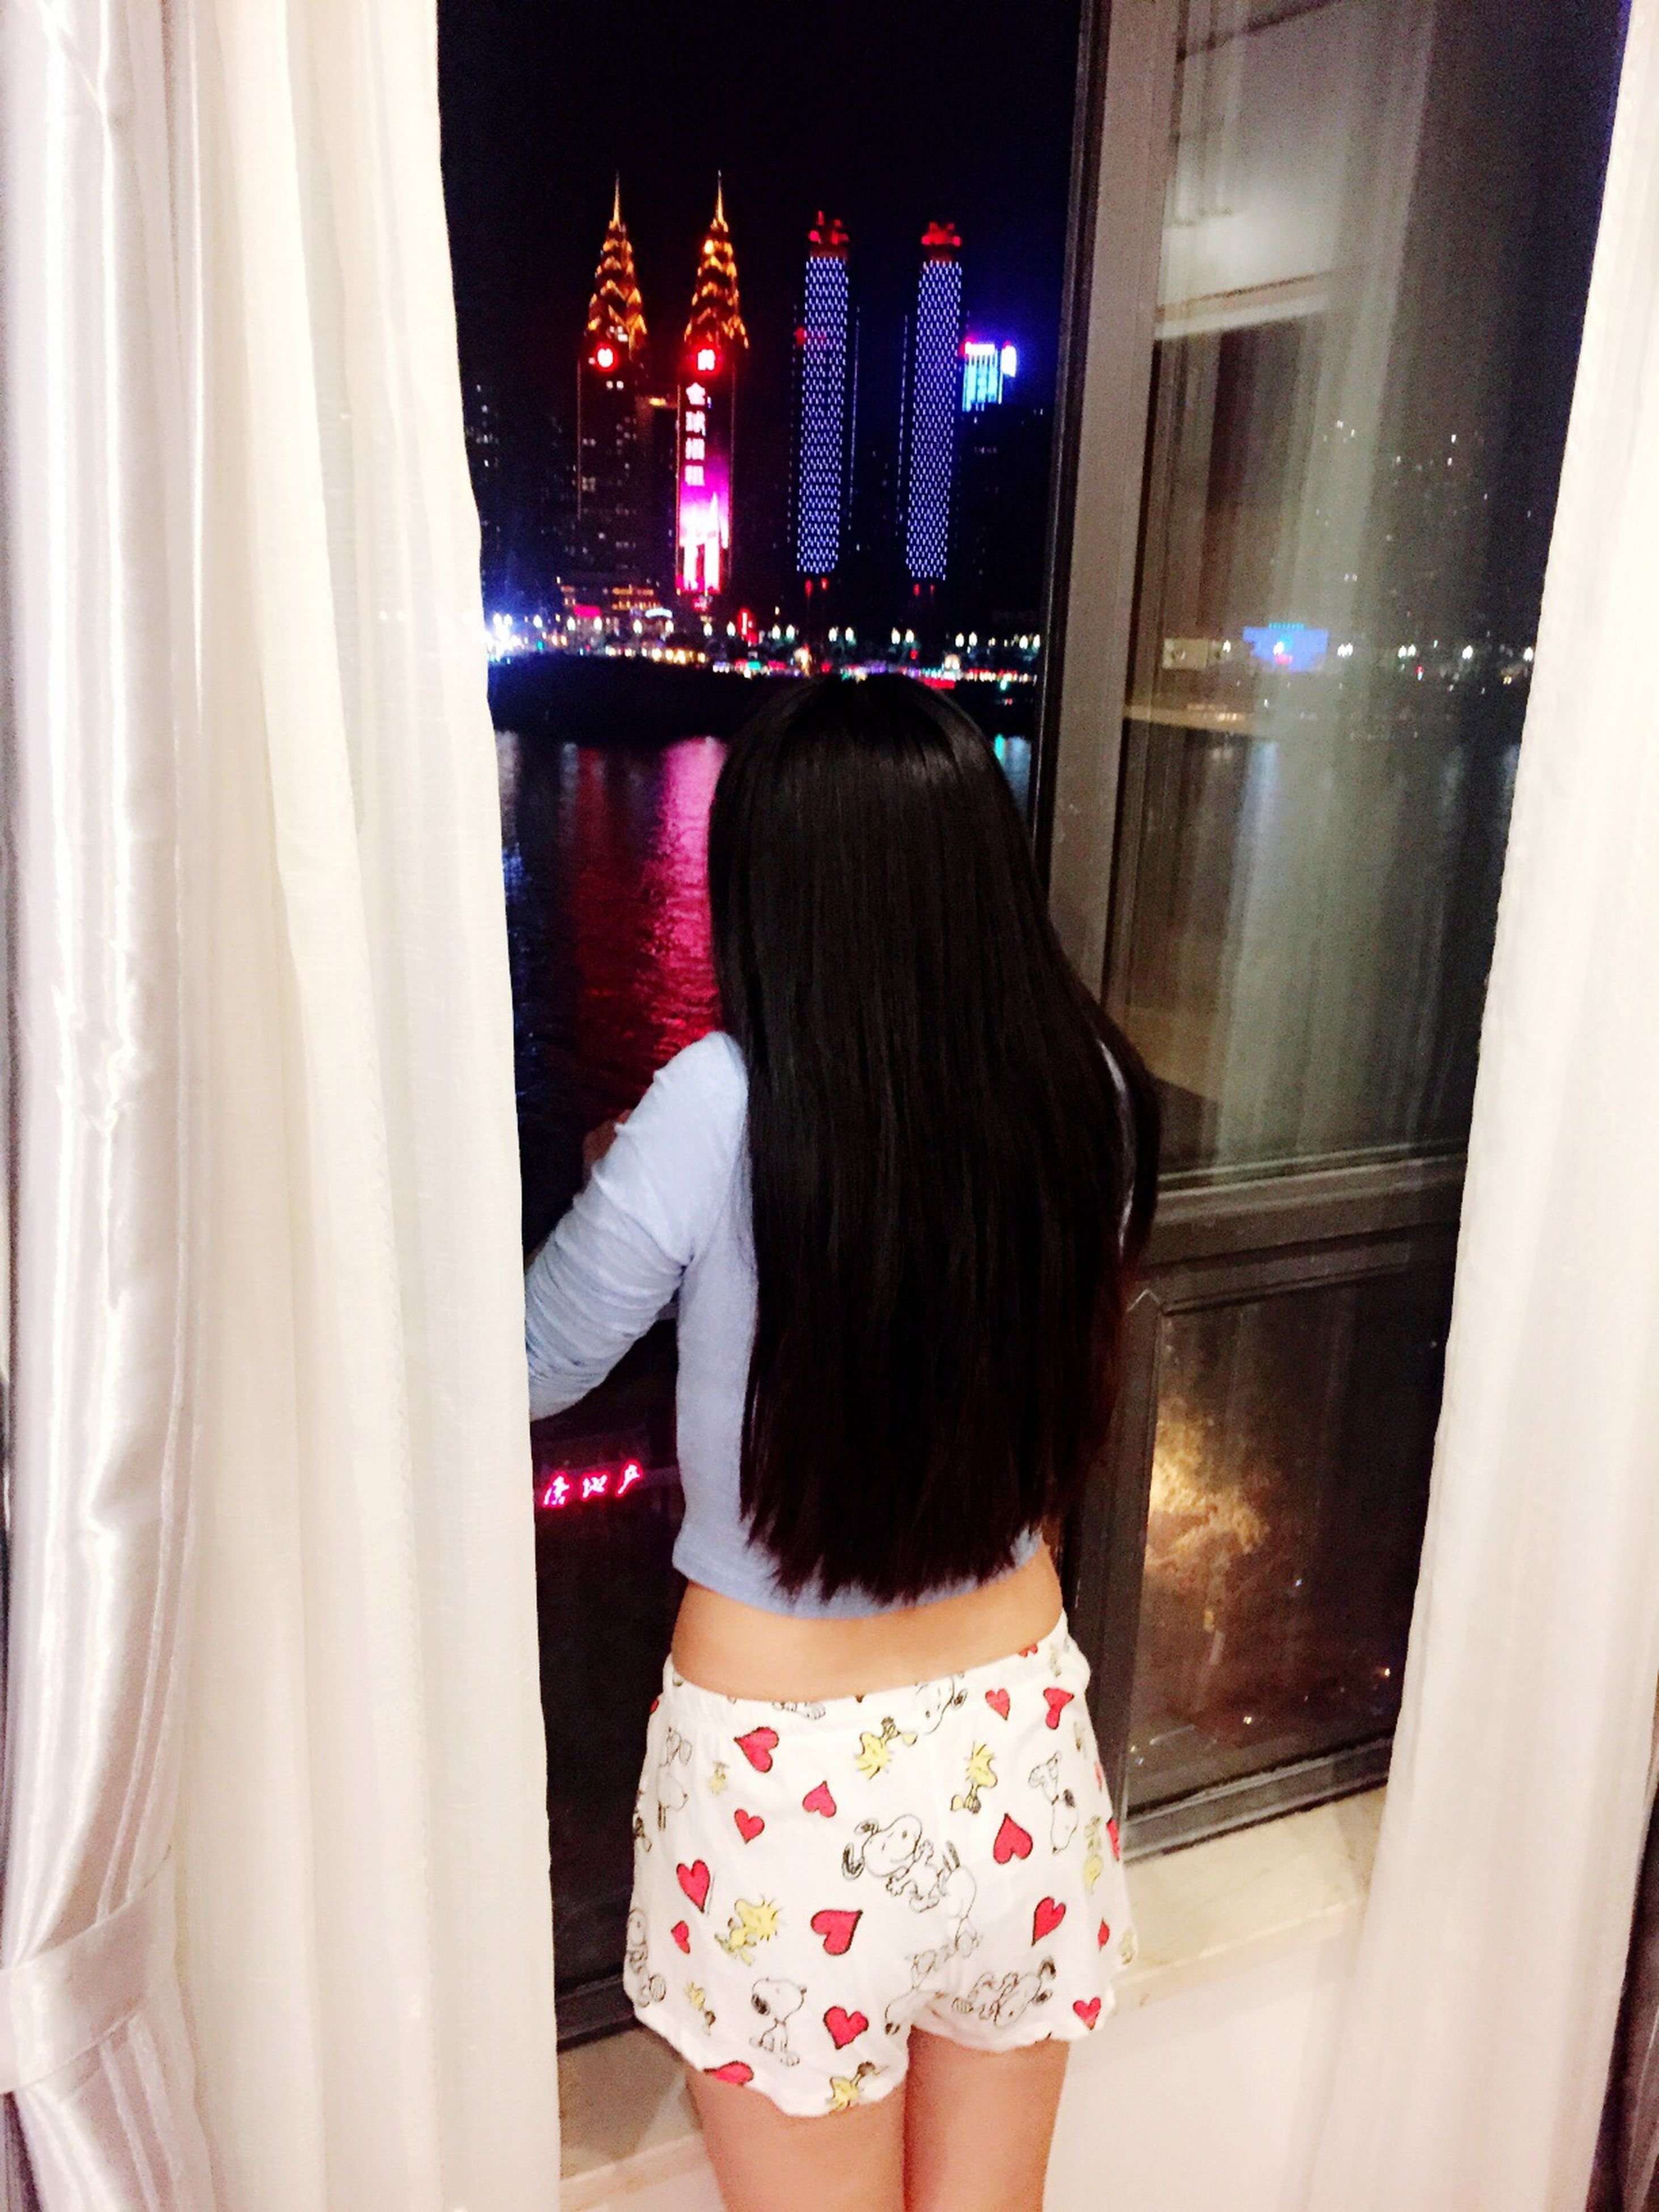 rear view, indoors, person, lifestyles, architecture, standing, built structure, leisure activity, full length, casual clothing, young women, long hair, three quarter length, sitting, curtain, waist up, side view, window